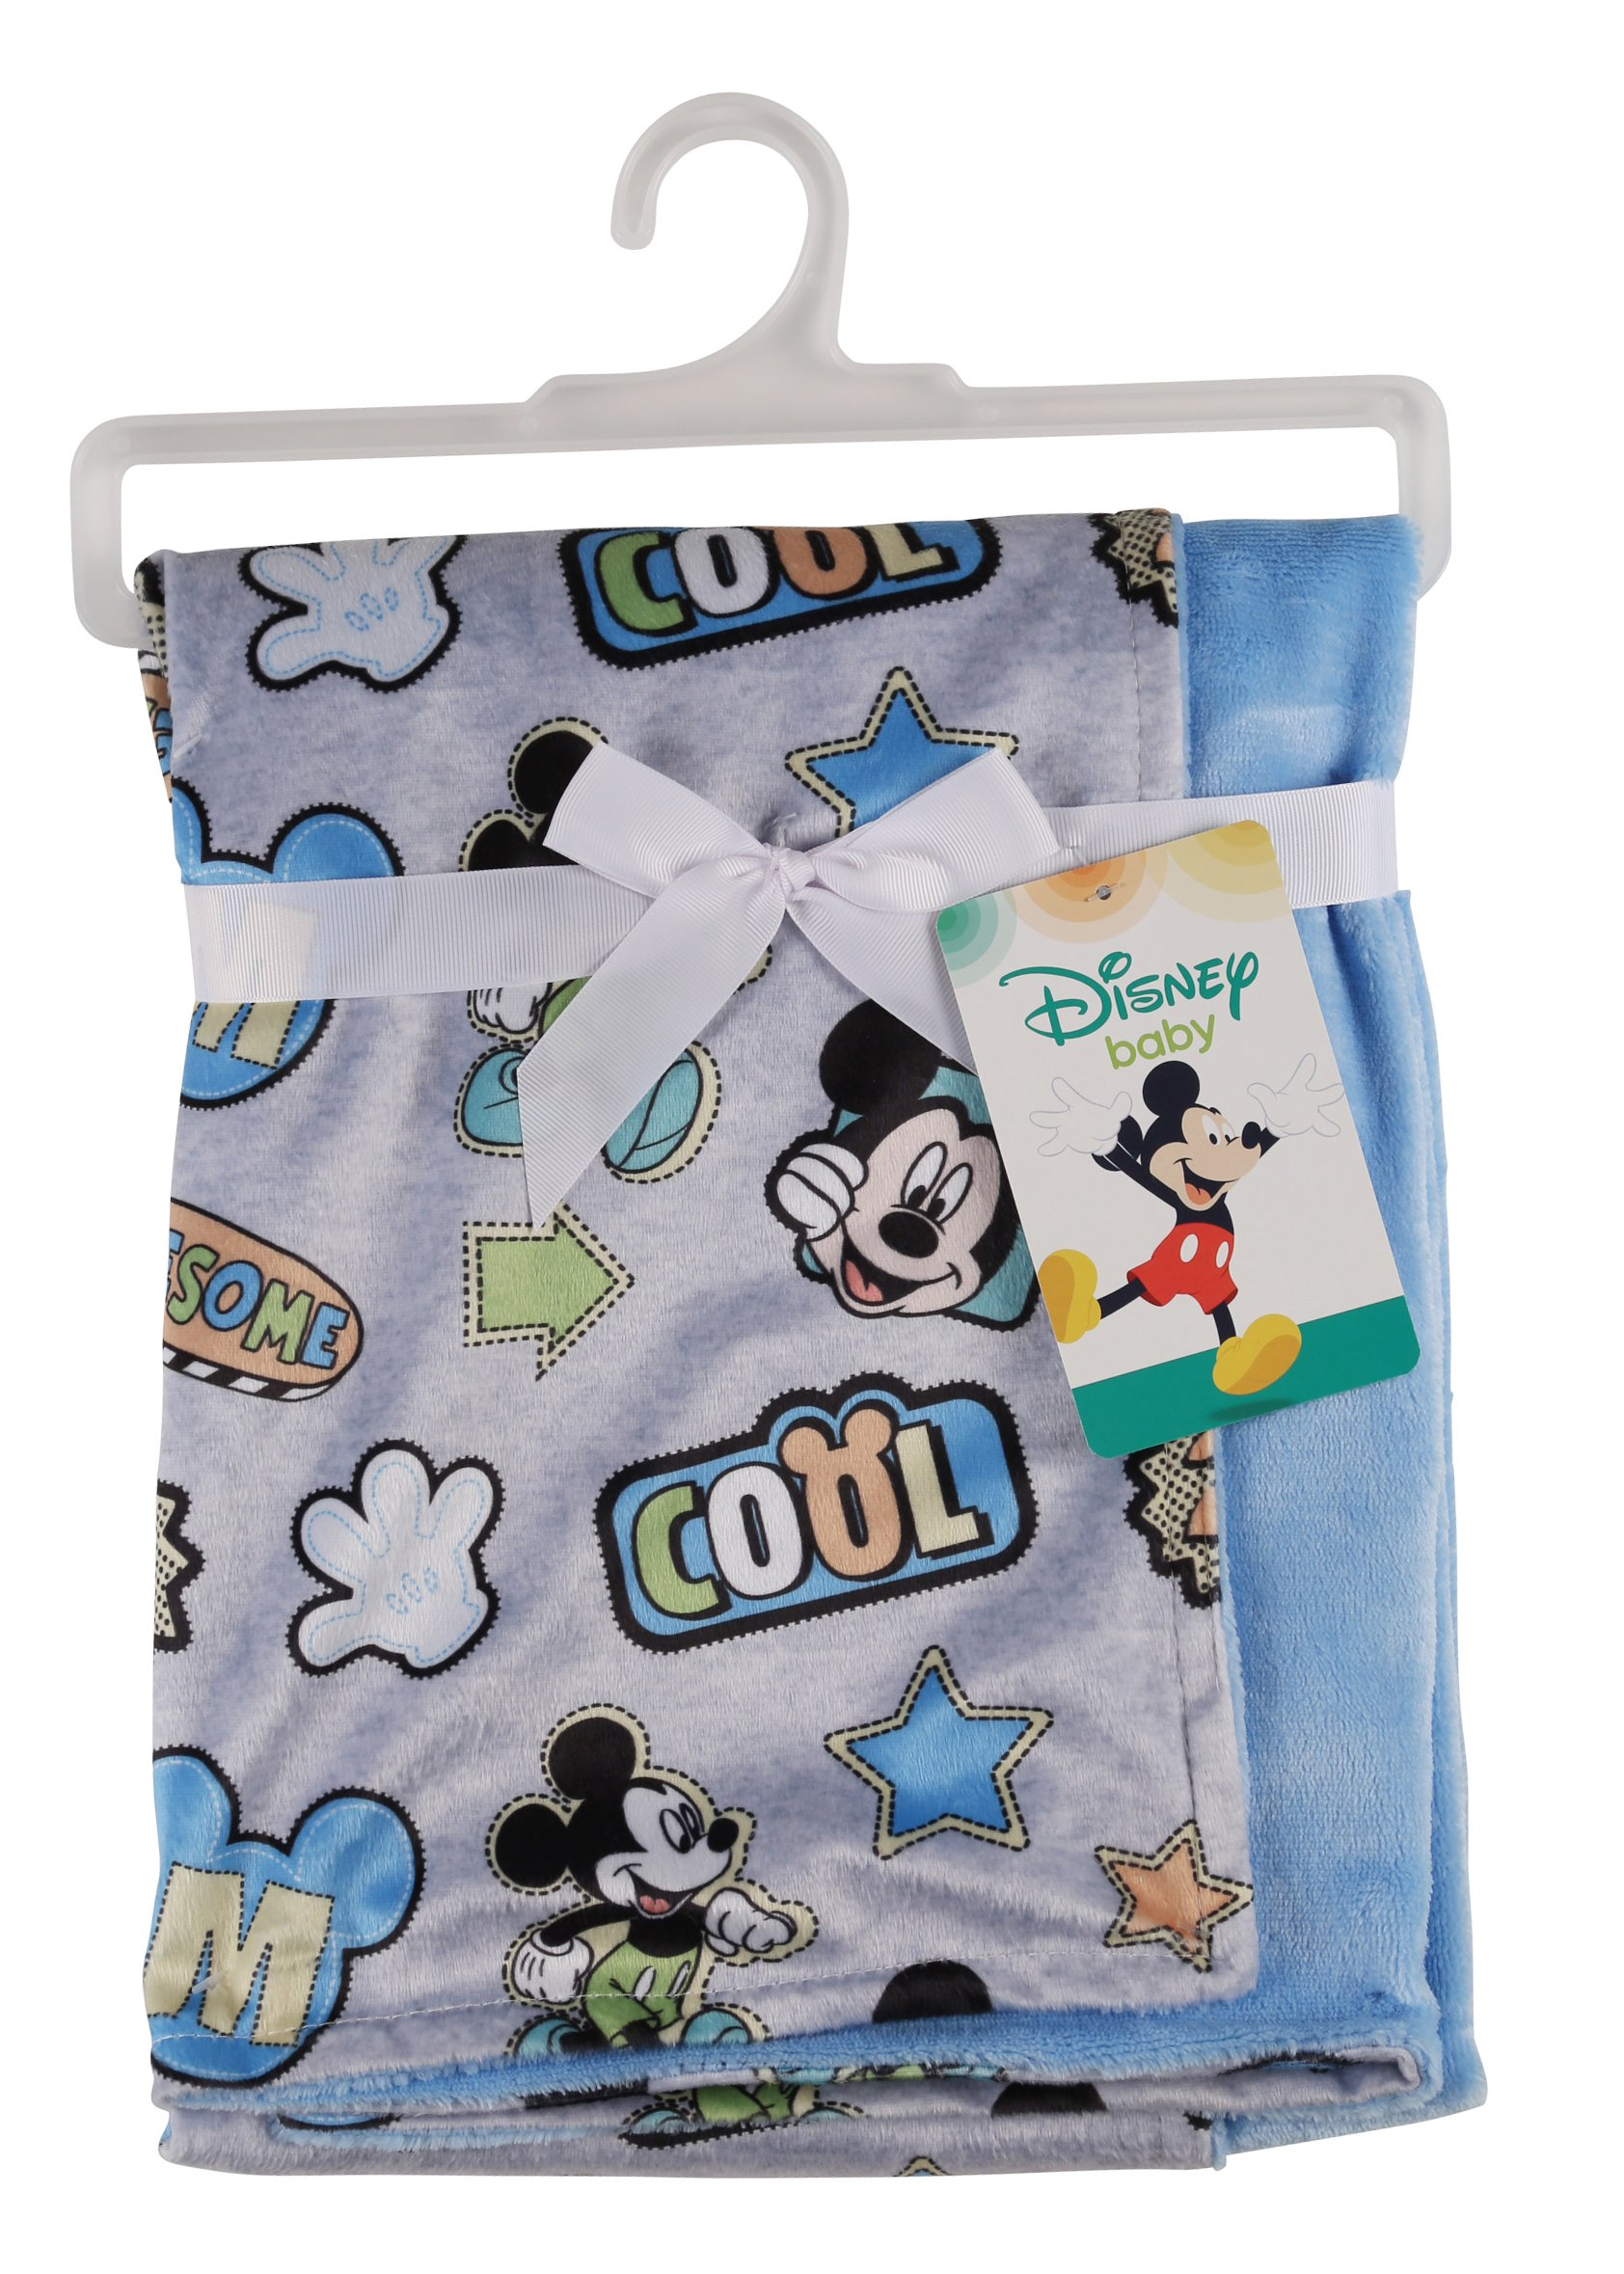 Disney Mickey Mouse Mink and Sherpa Double Sided Infant Blanket, Awesome Print